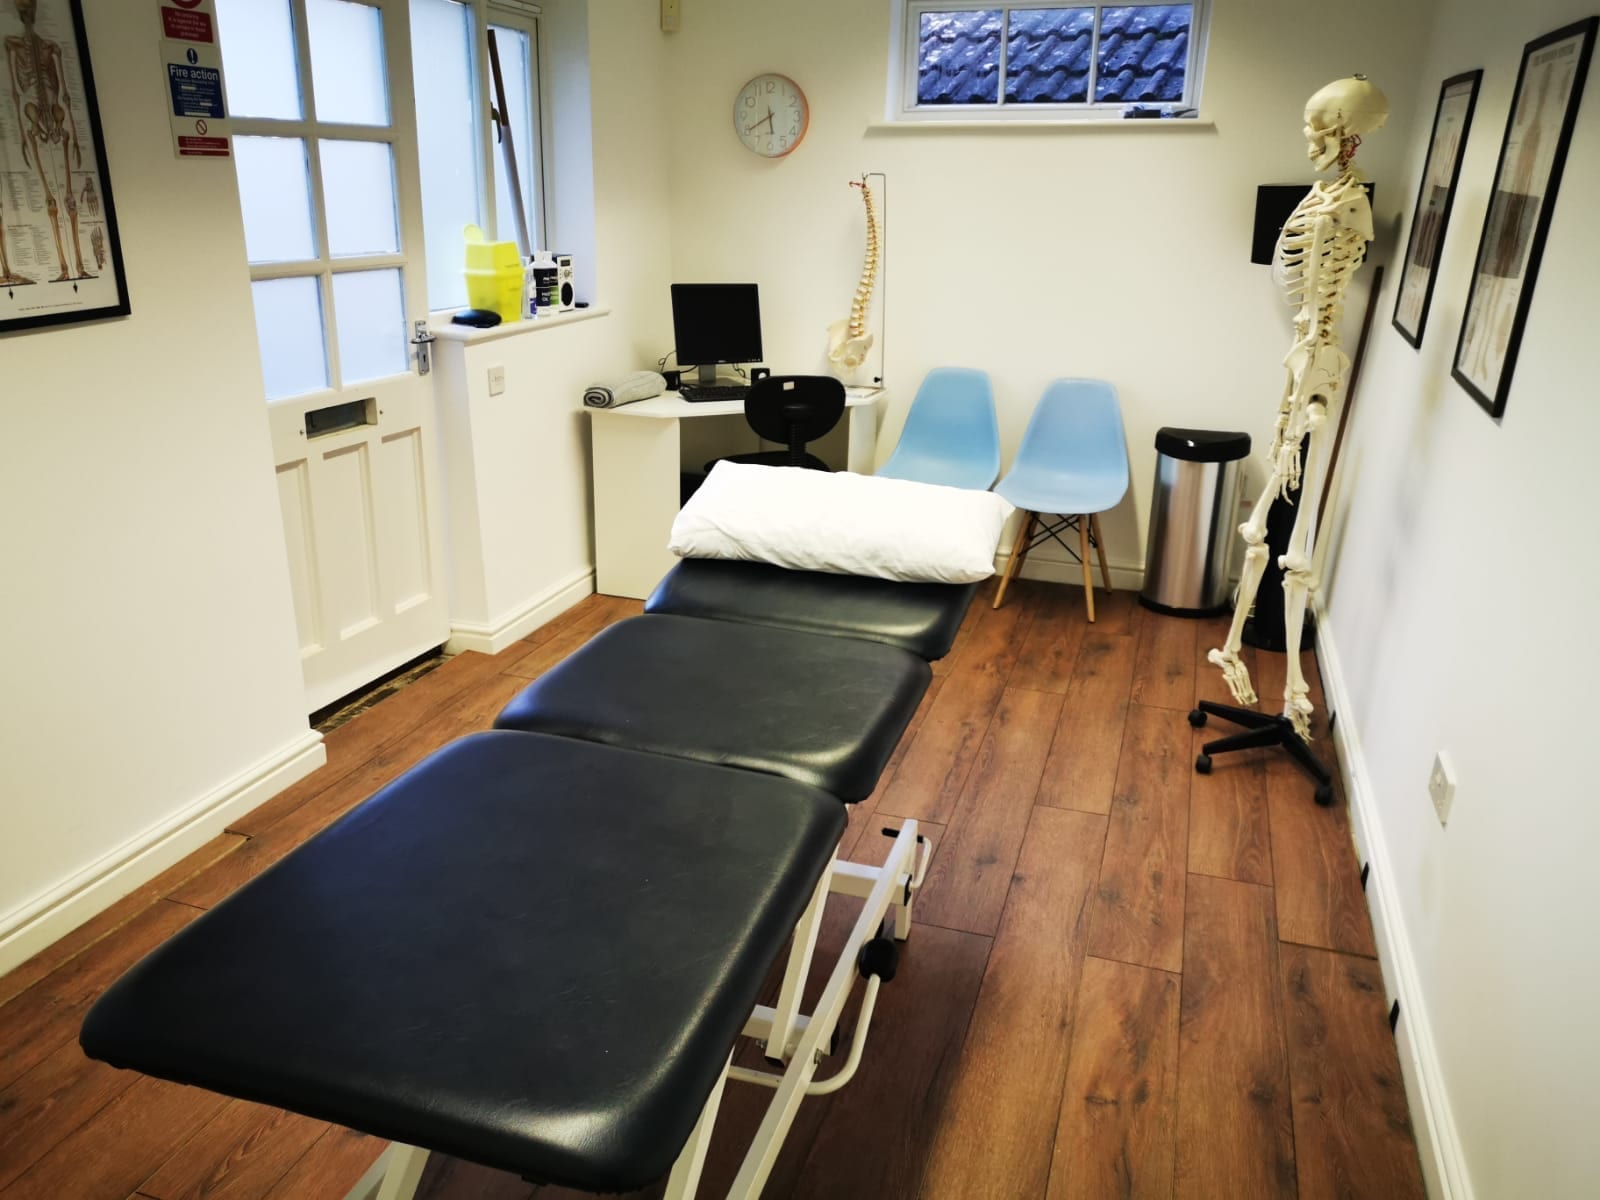 New physiotherapy room